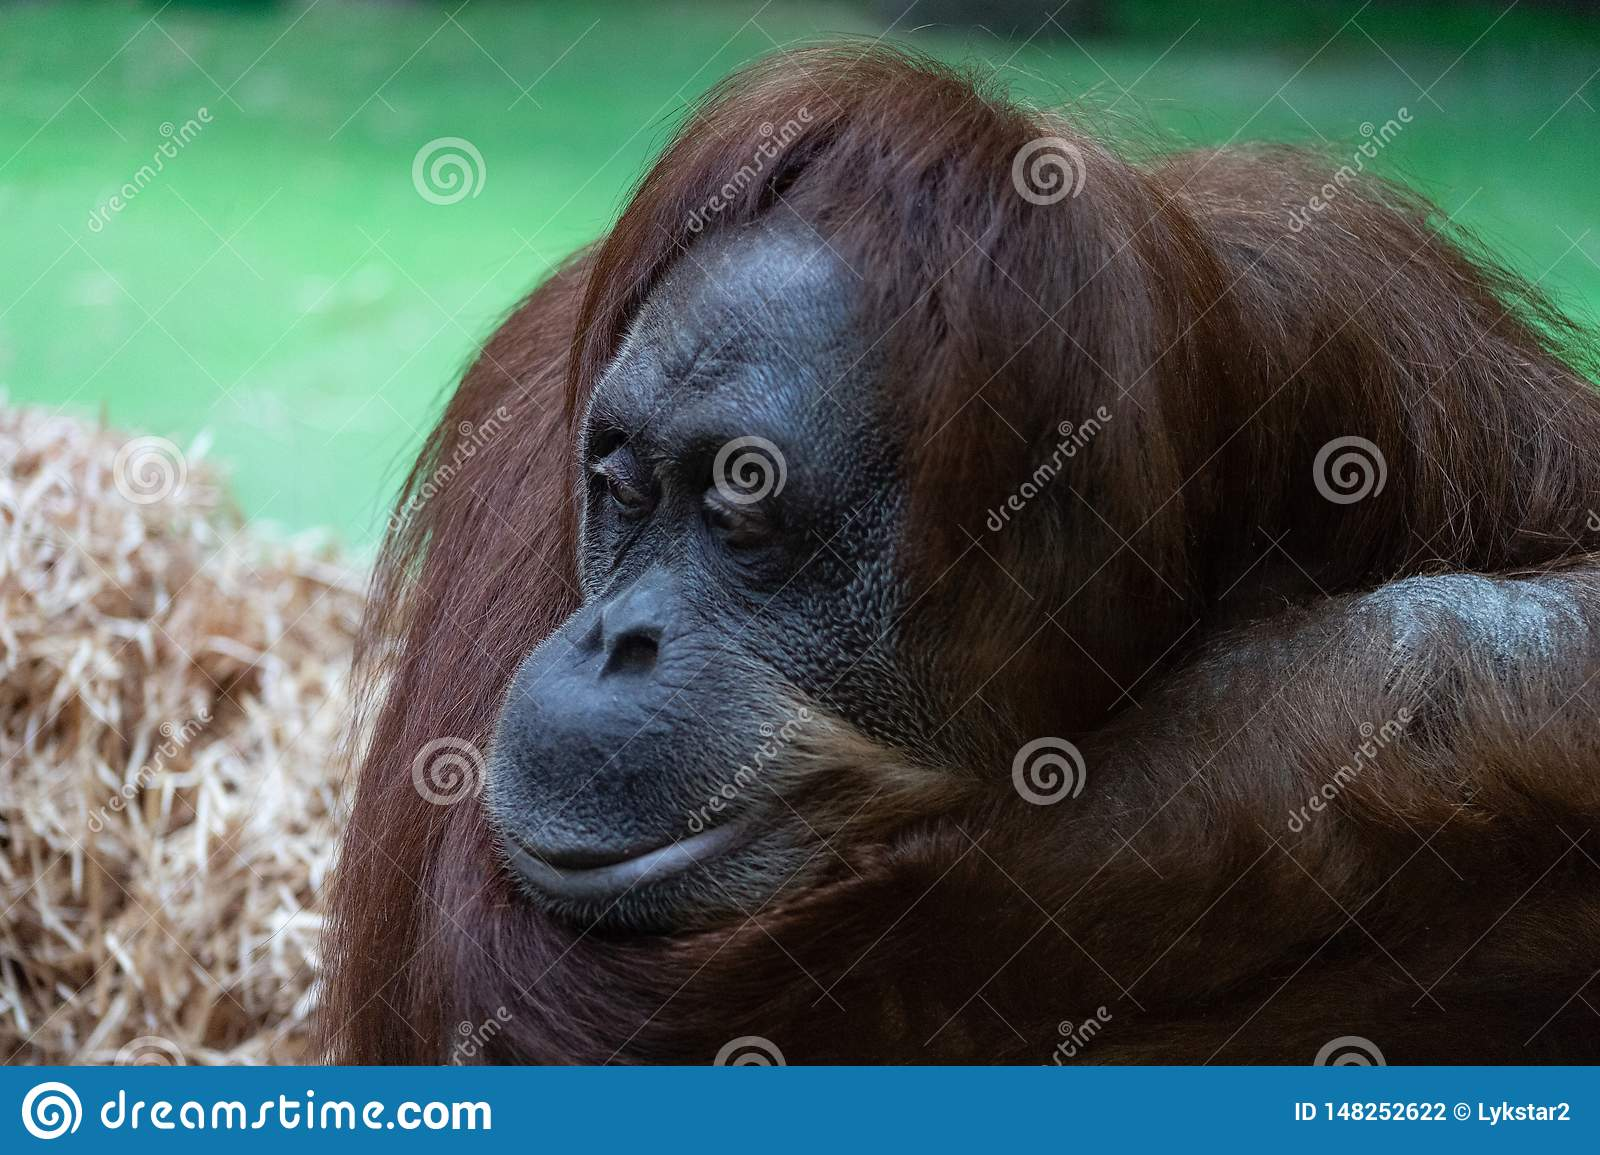 Portrait of a pensive orange orangutan with a funny face lazily watching what is happening